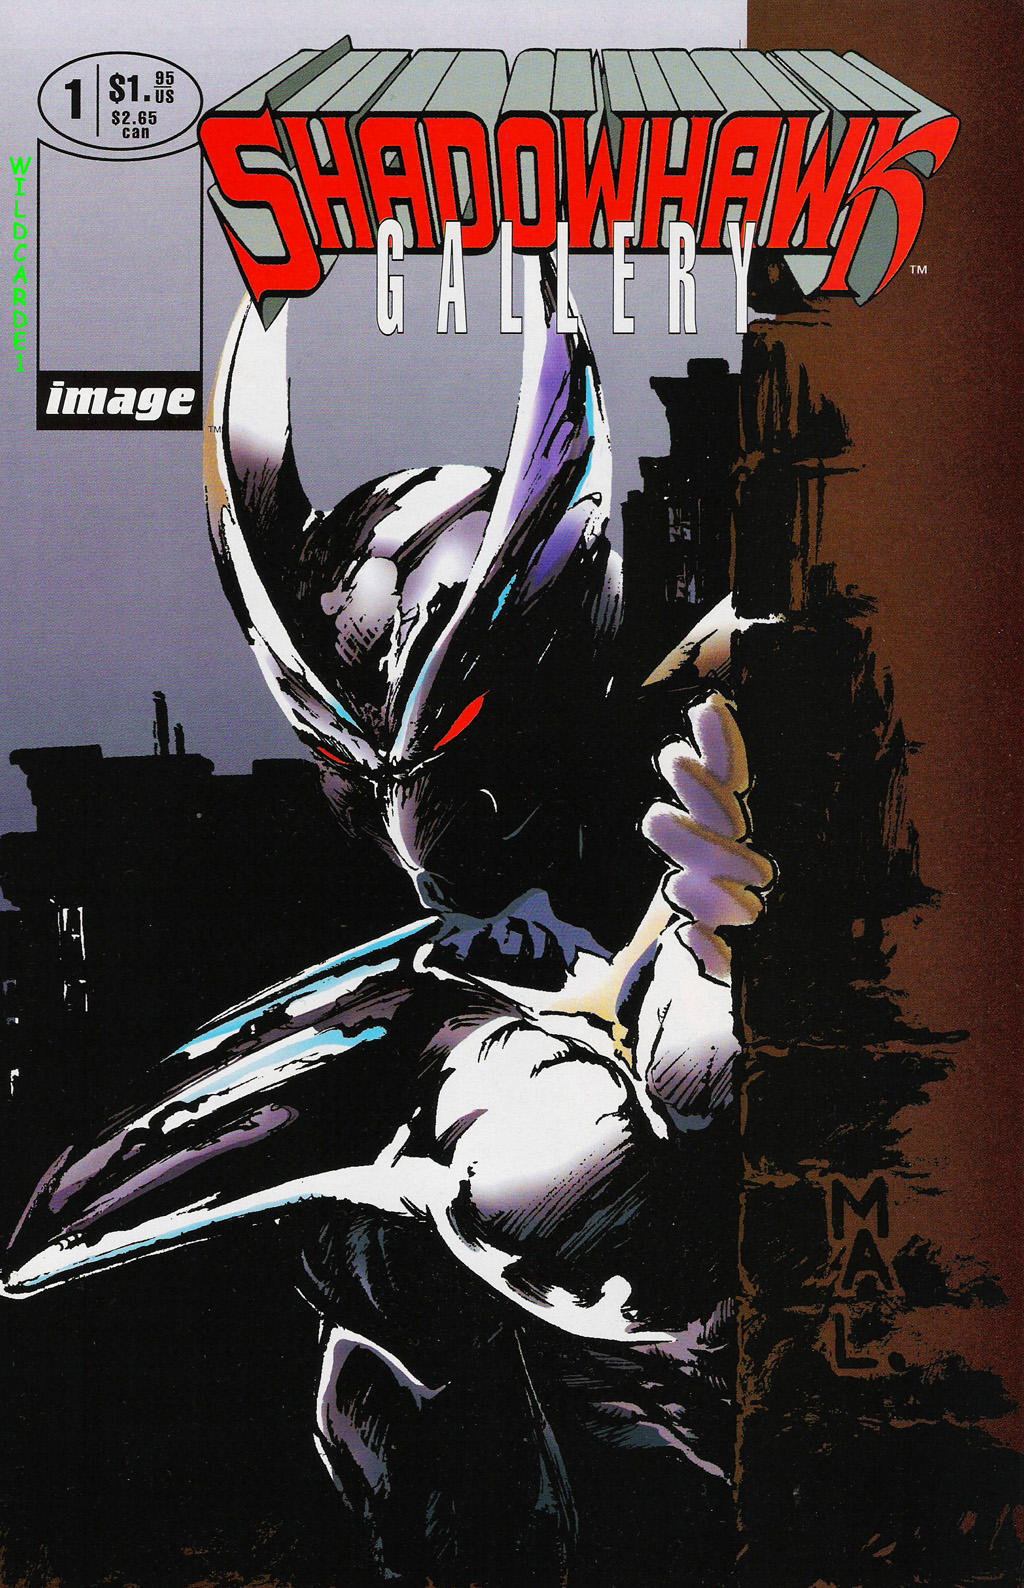 Read online ShadowHawk Gallery comic -  Issue # Full - 1